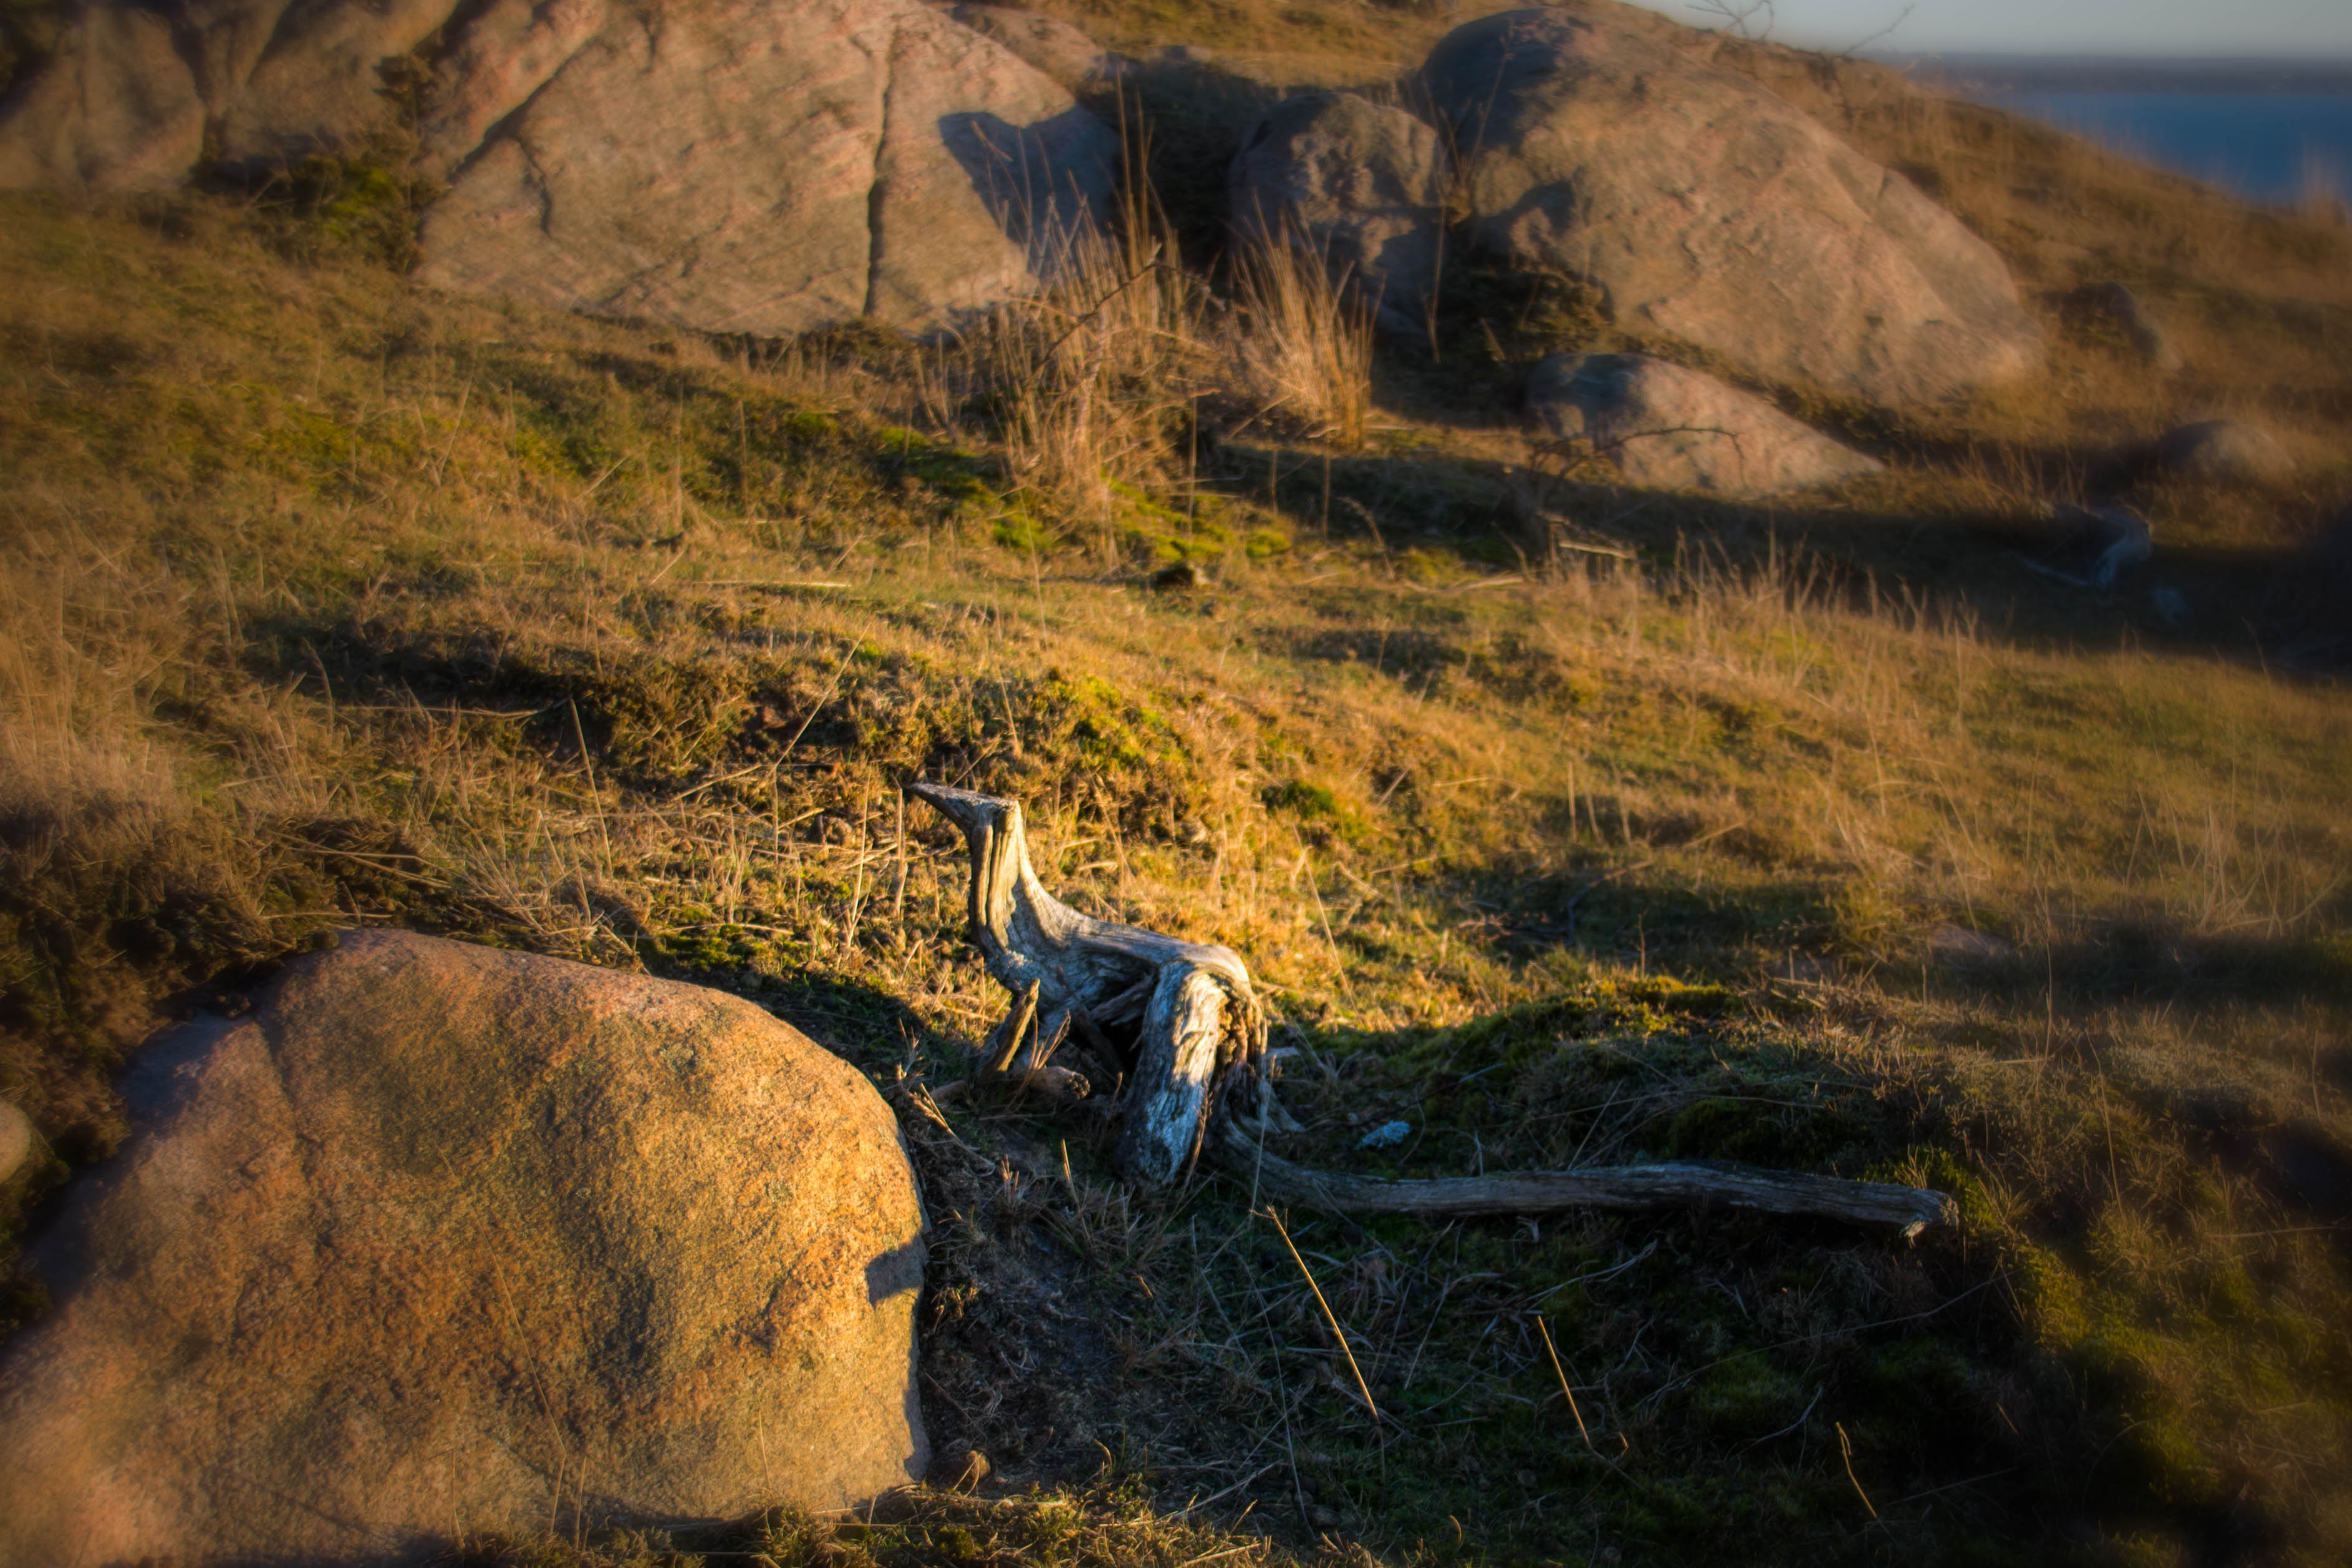 20170115 Kullaberg cold but sunny winter afternoon.jpg